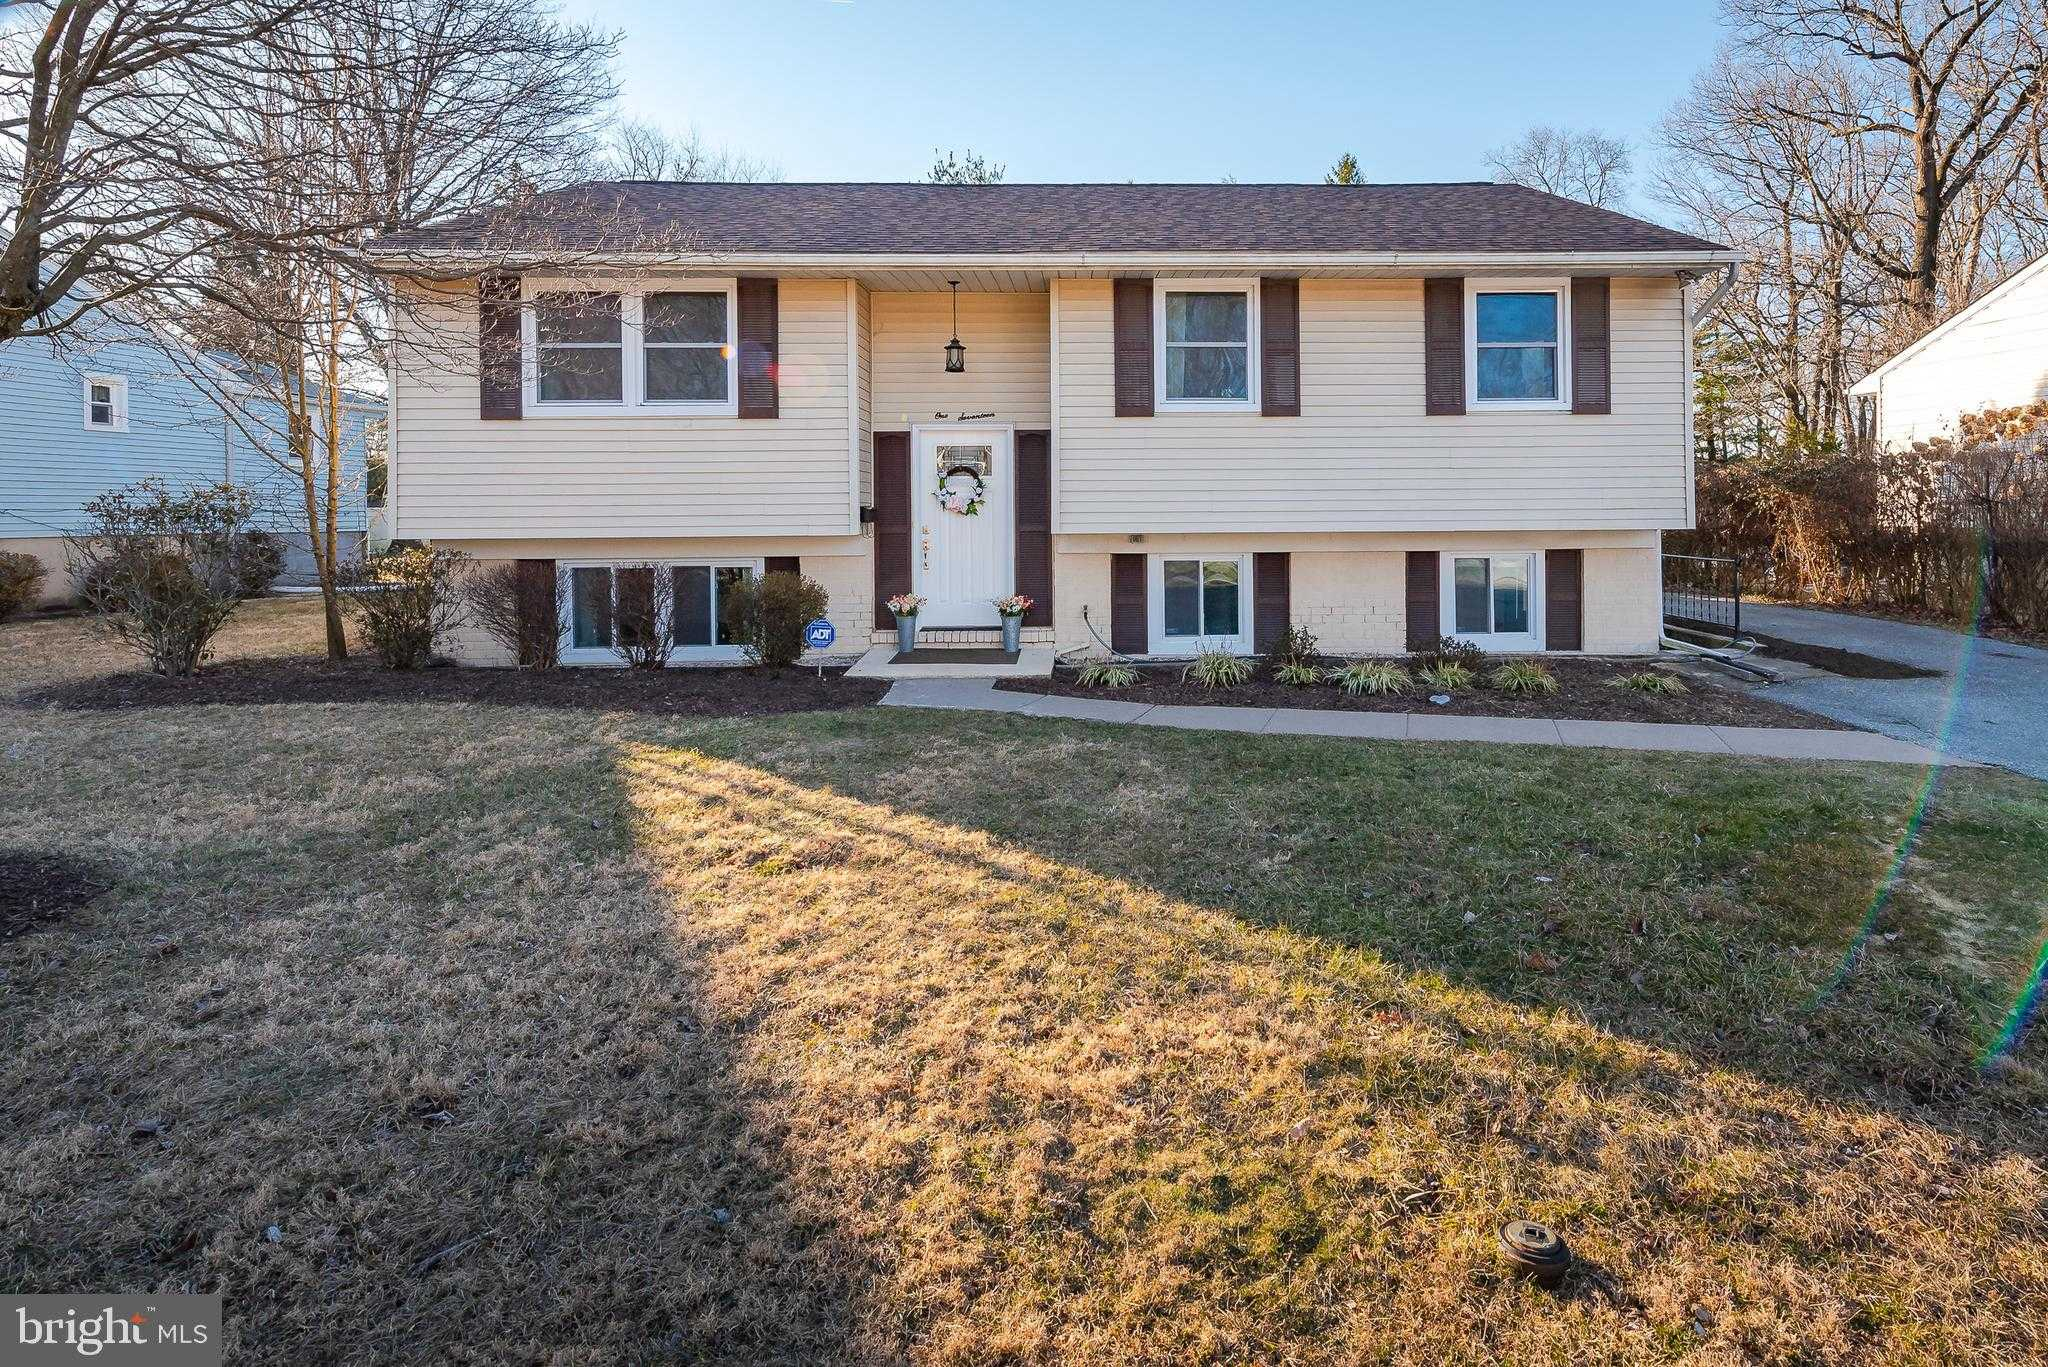 $289,900 - 4Br/3Ba -  for Sale in Cherrywood, Reisterstown